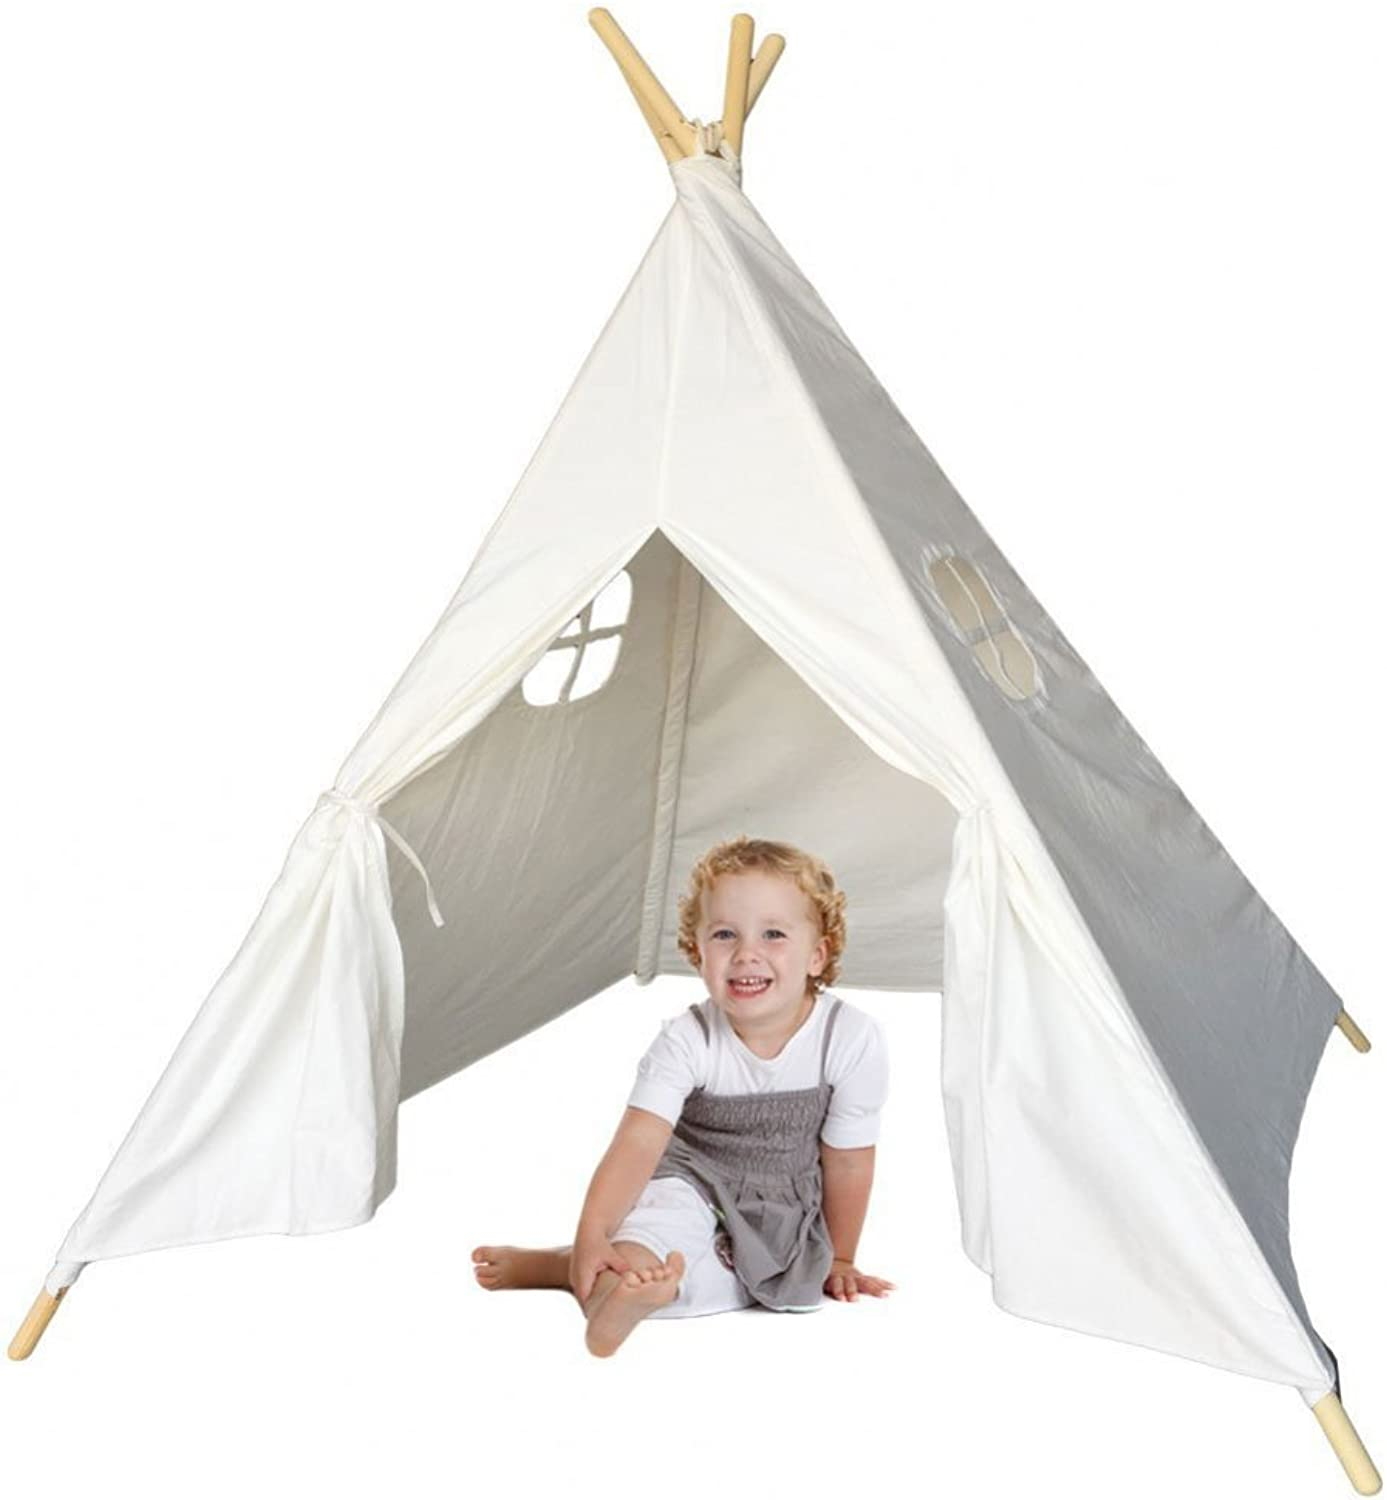 MakBB Indoor Weiß Teepee Tent Play Playhouse Tents Canvas for Kids with Carry Case by MakBB B01JNJUBWU  Neues Design | Clearance Sale